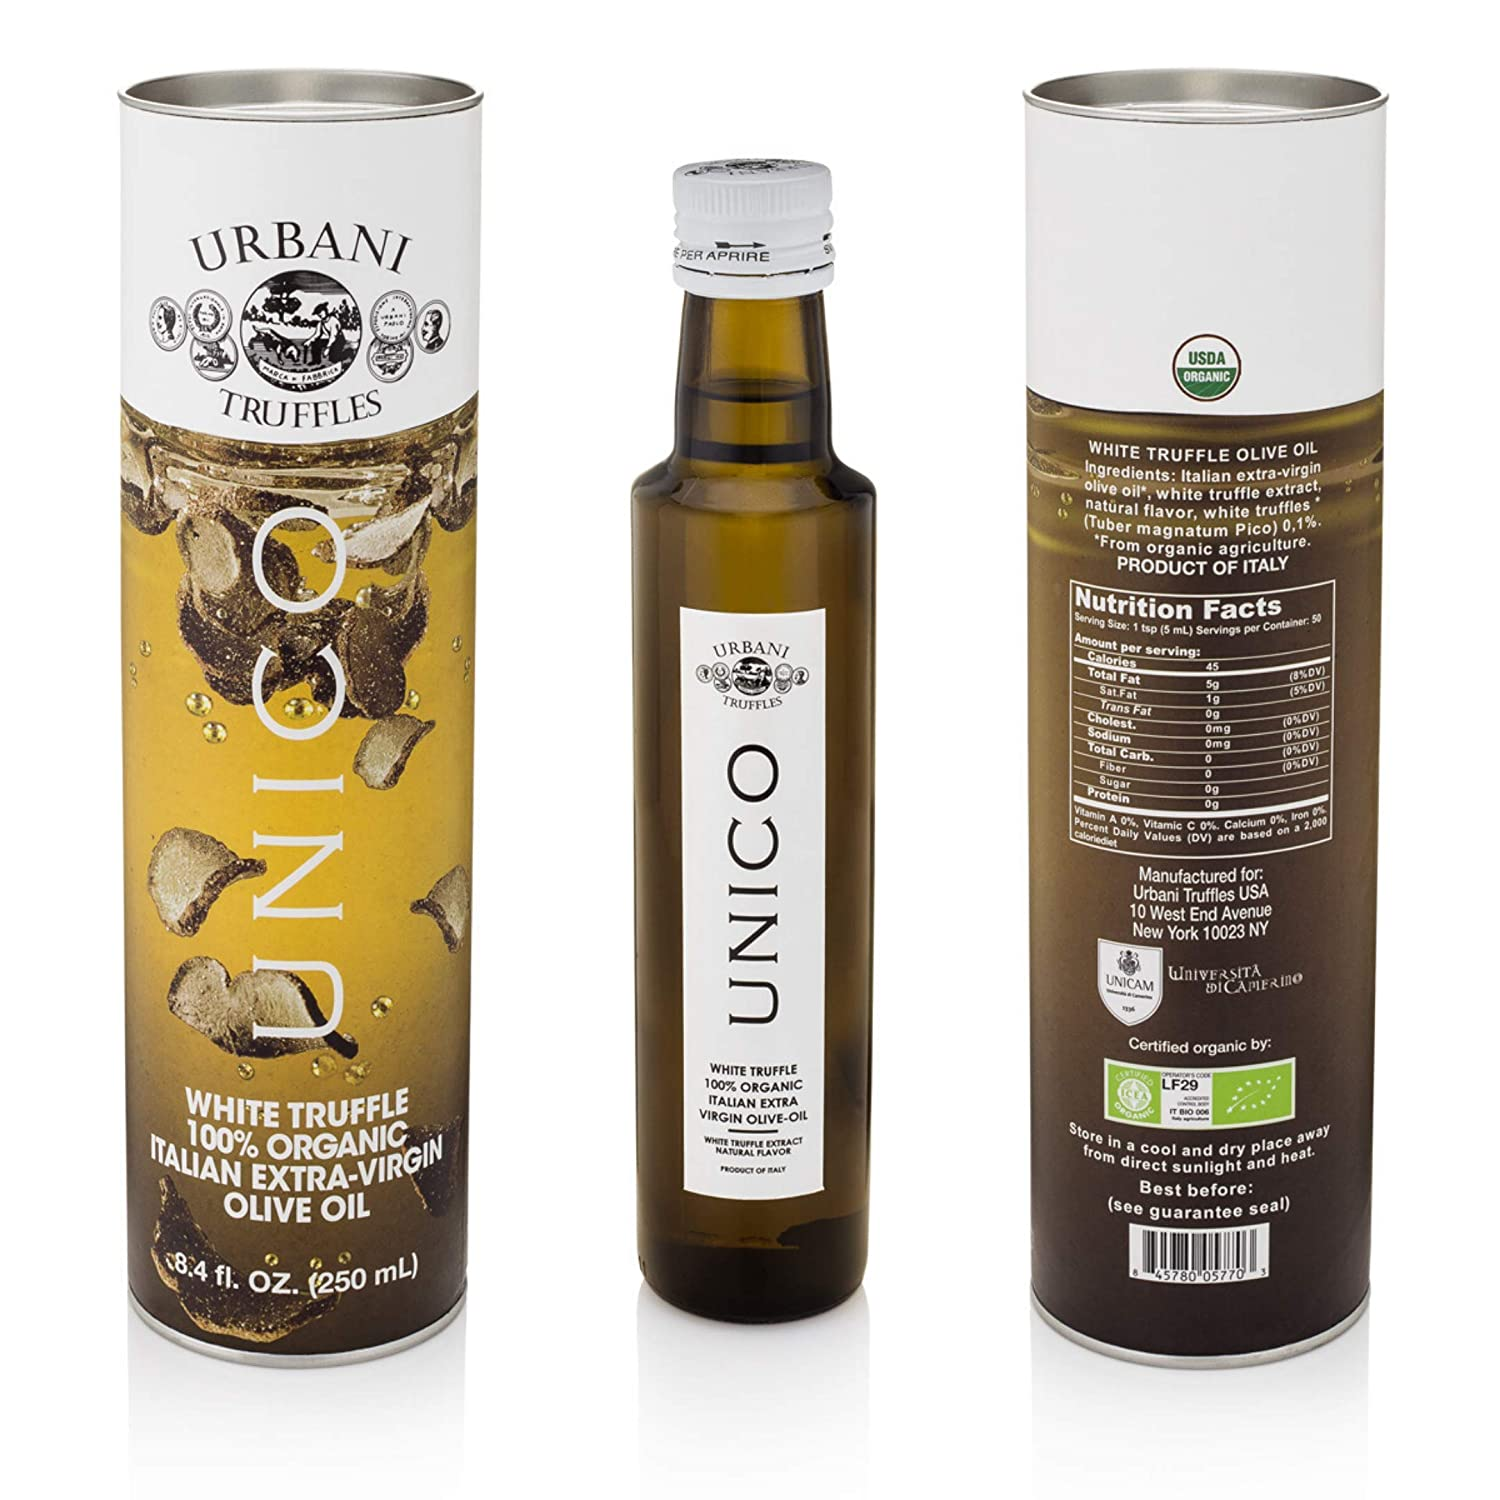 Italian White Truffle Extra Virgin Olive Oil - 8.4 Oz - by Urbani Truffles. Organic Truffle Oil 100% Made In Italy